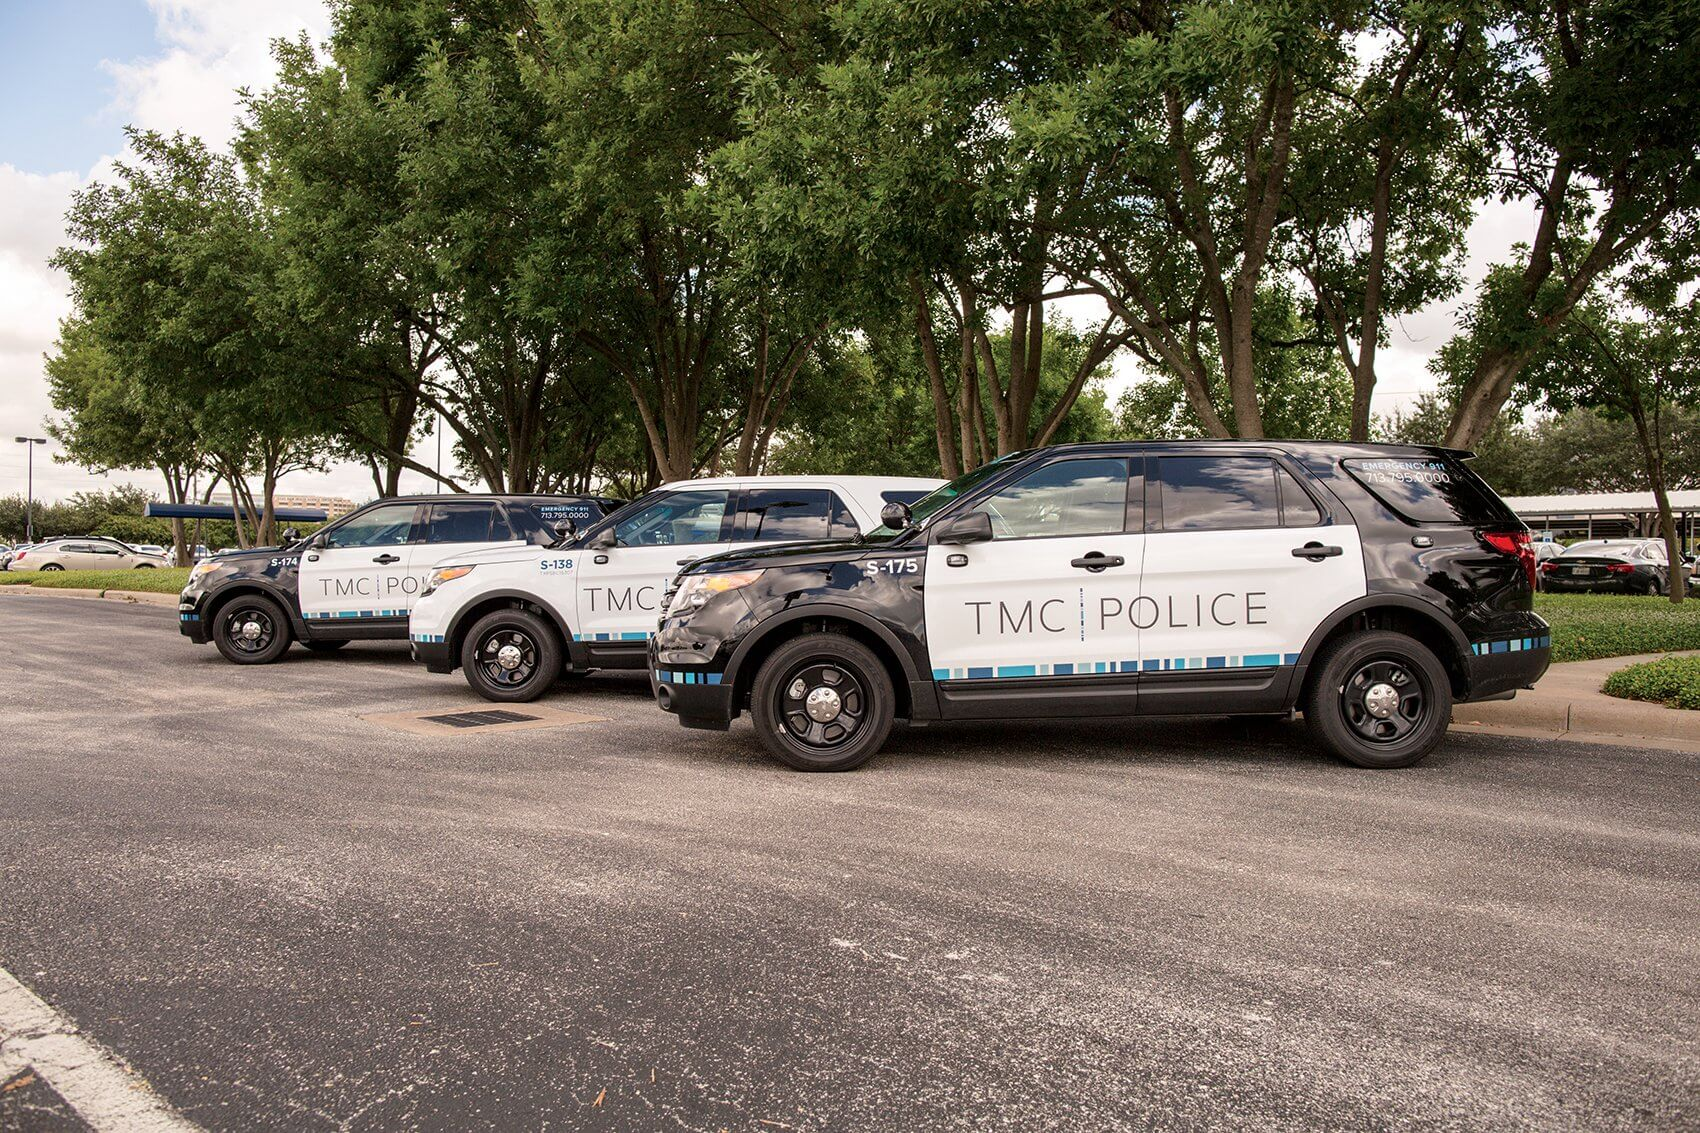 The TMC security and police vehicles recently received a makeover and now feature updated Texas Medical Center graphics.